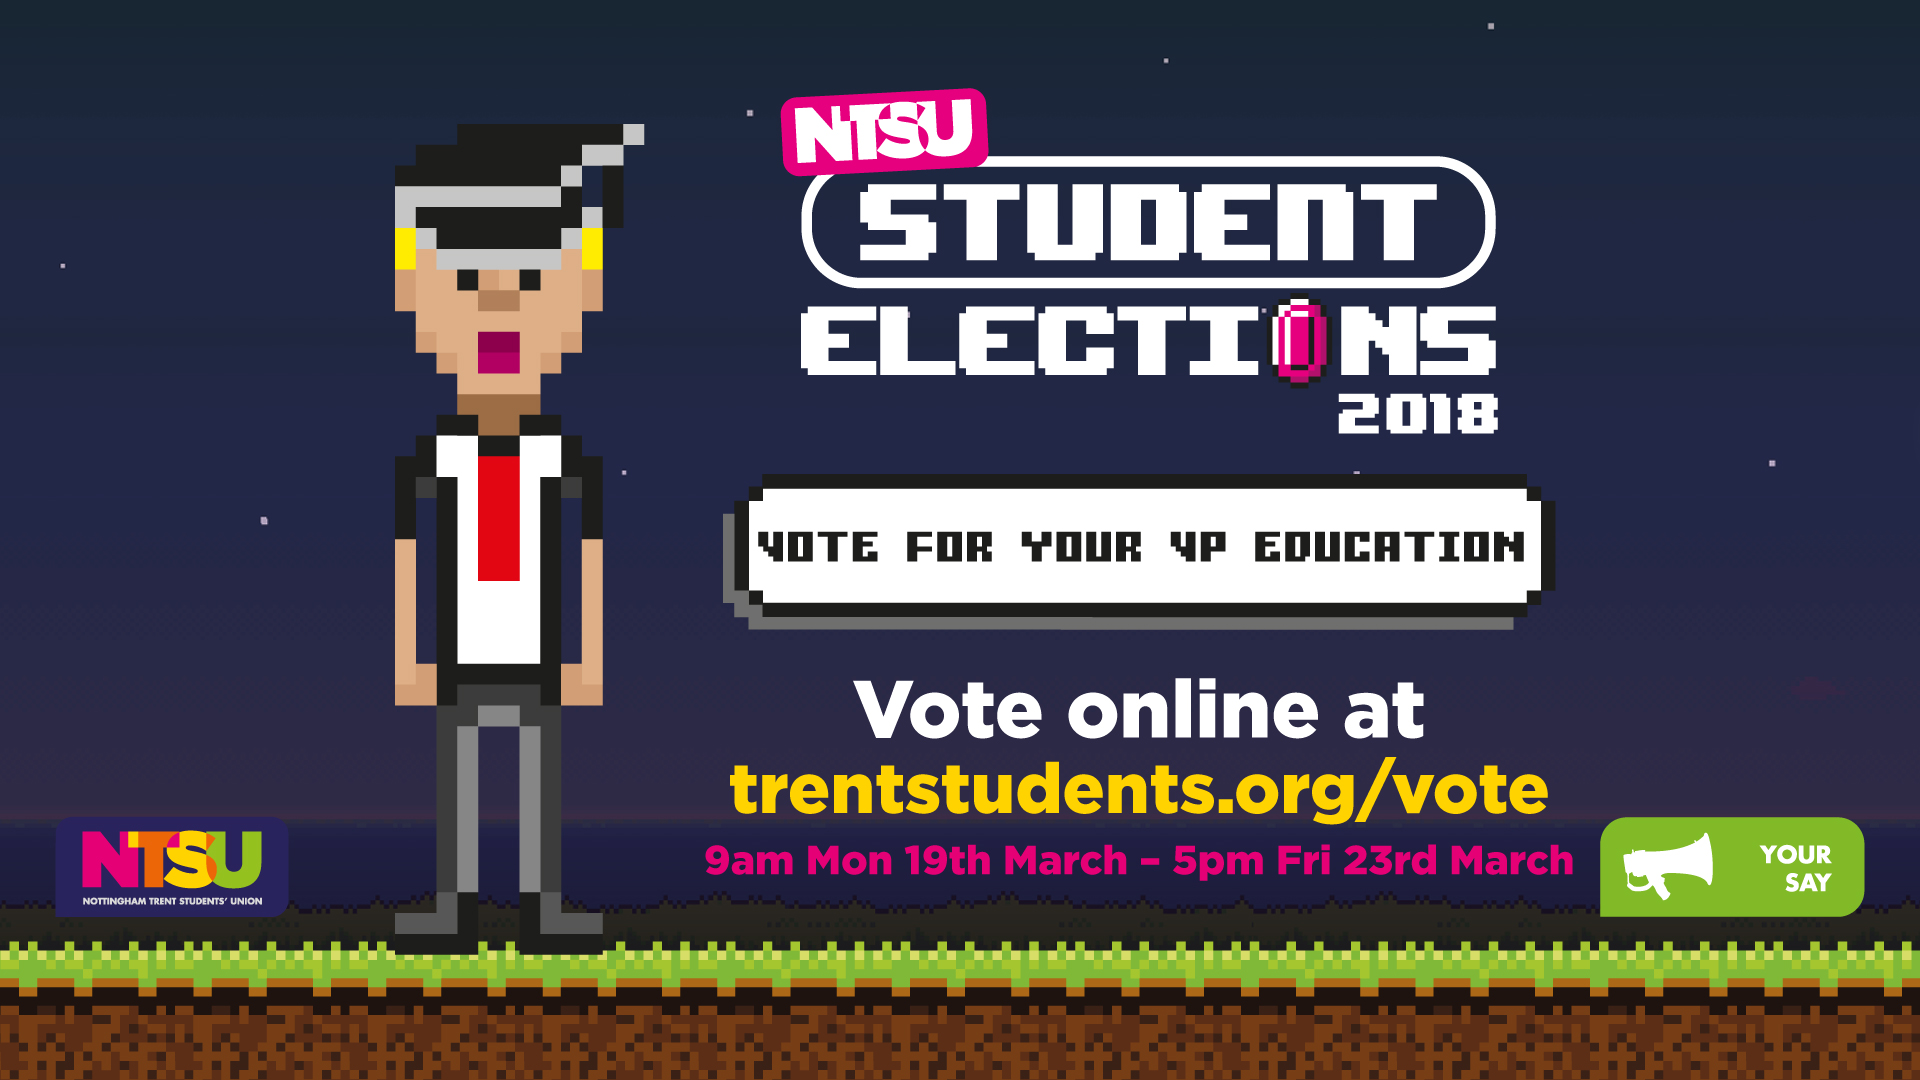 elections-vote-education